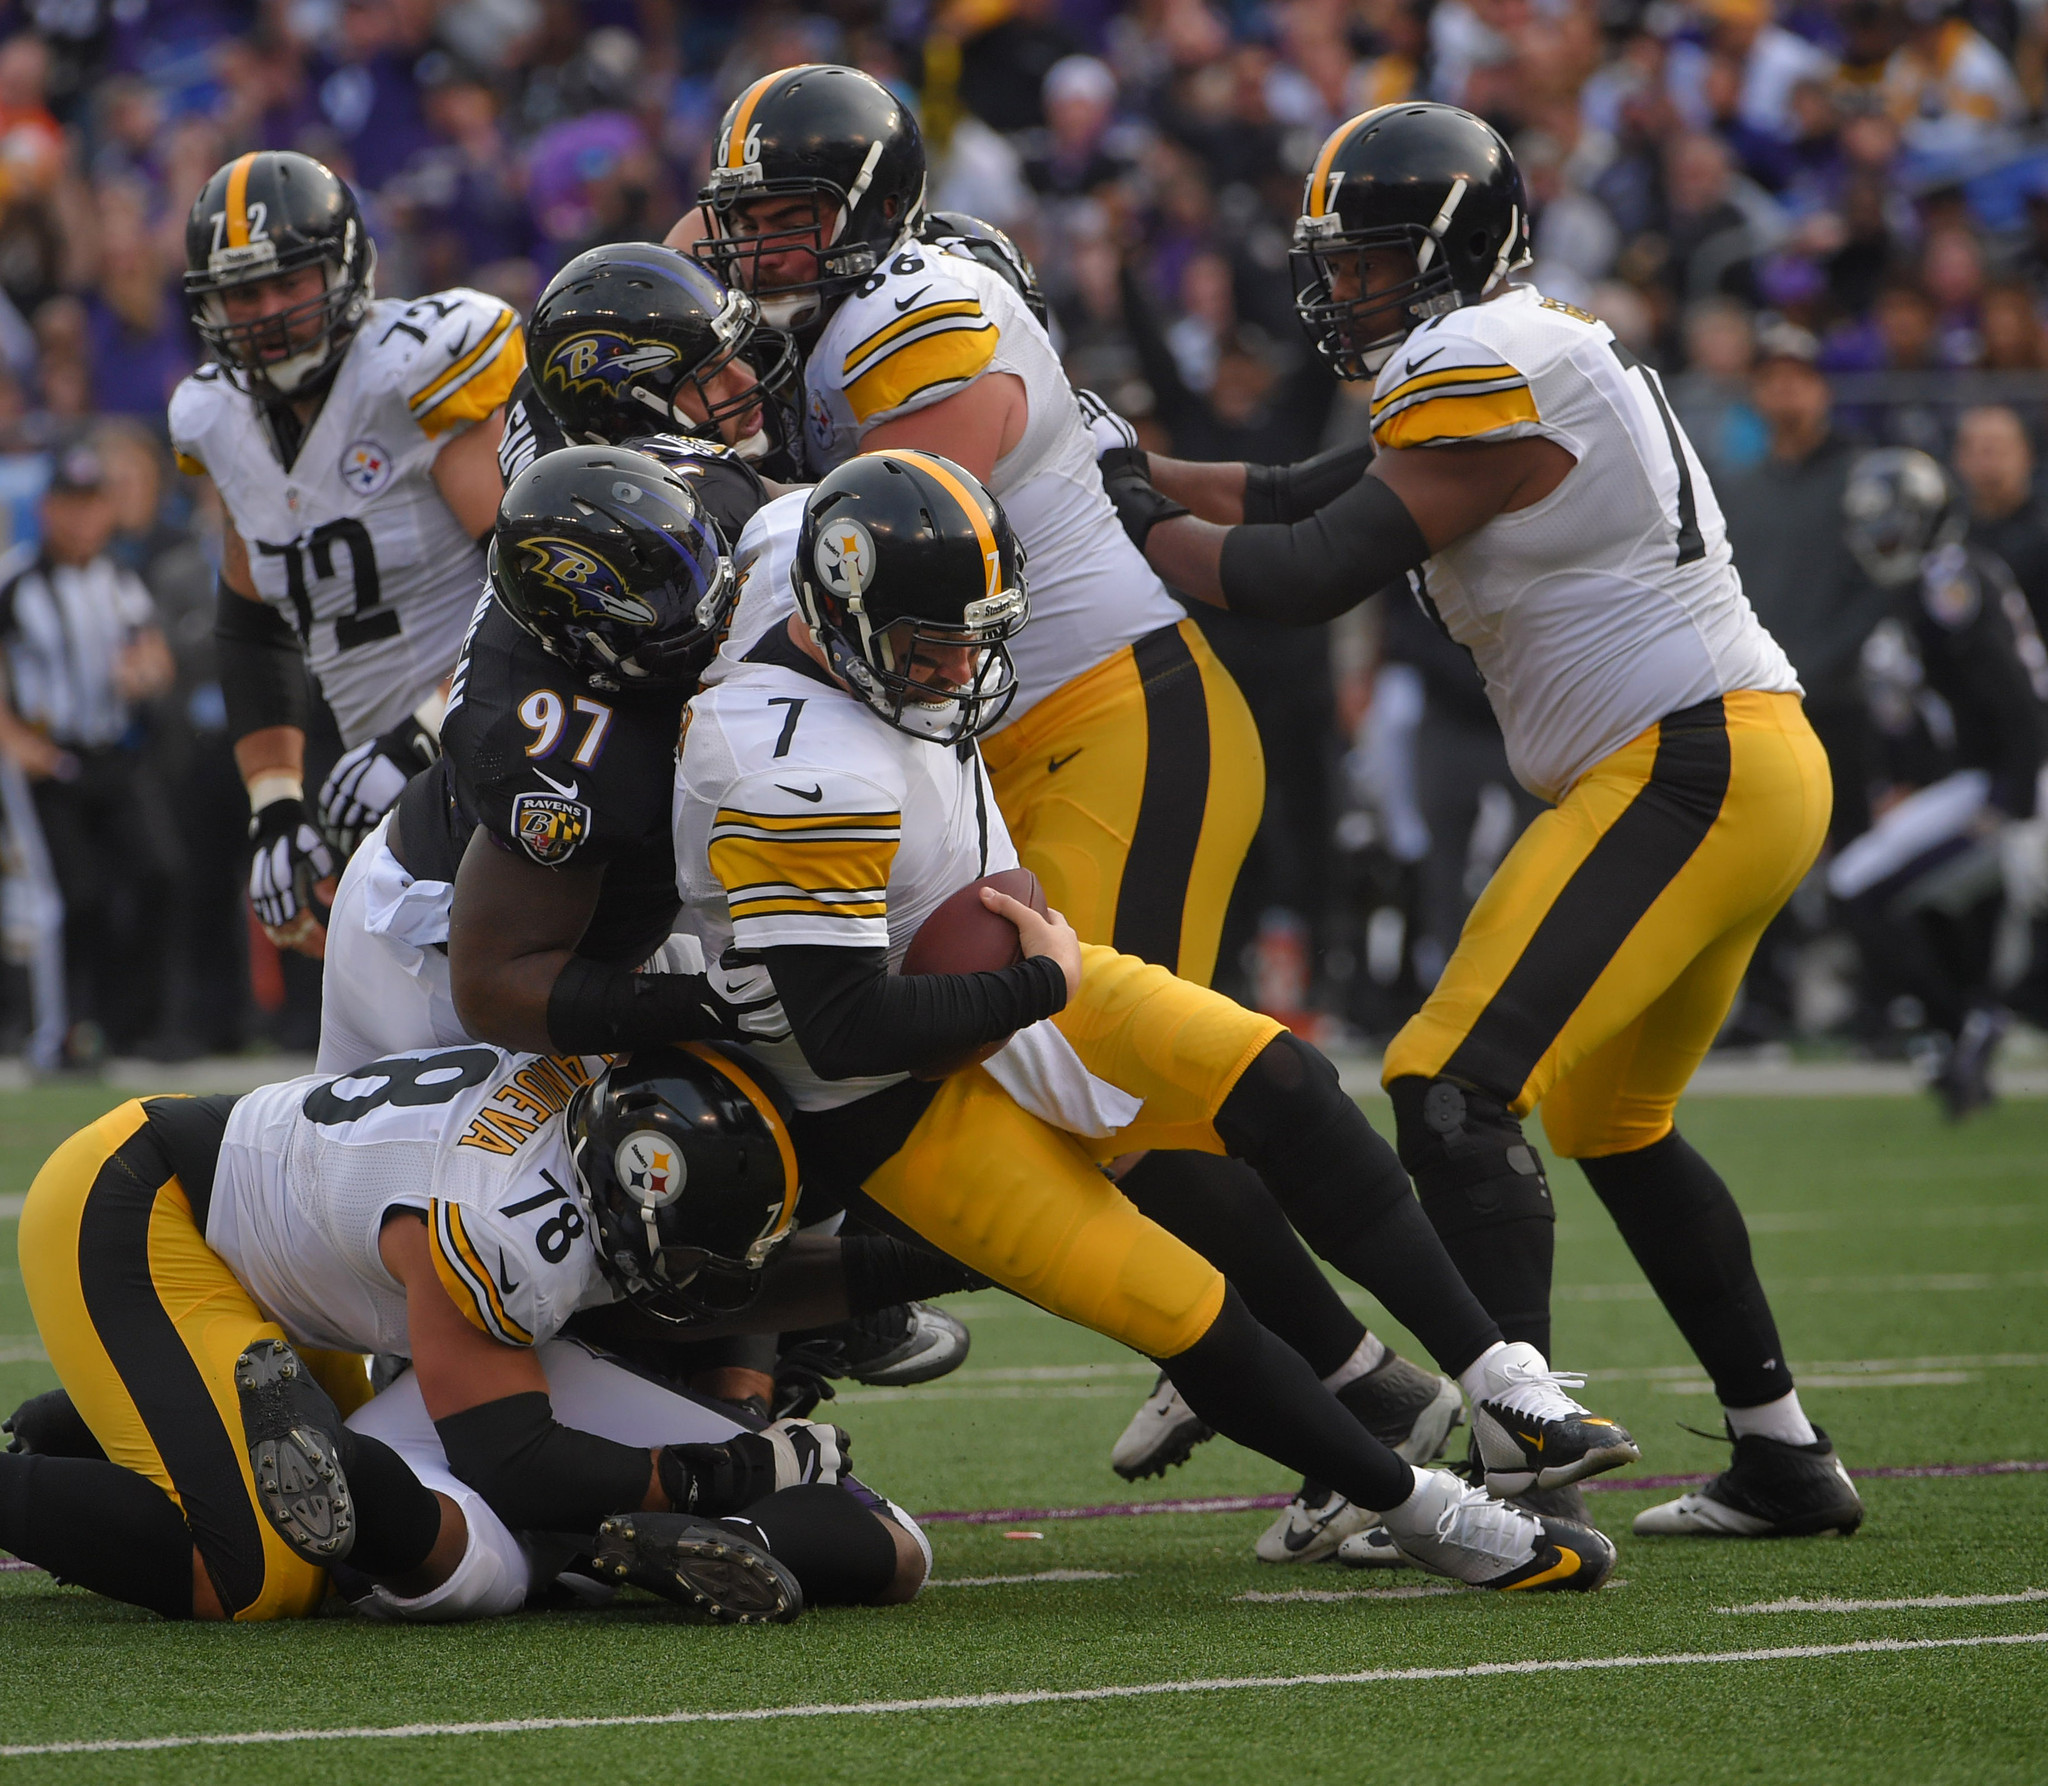 Bs-sp-ravens-steelers-1225-20161223